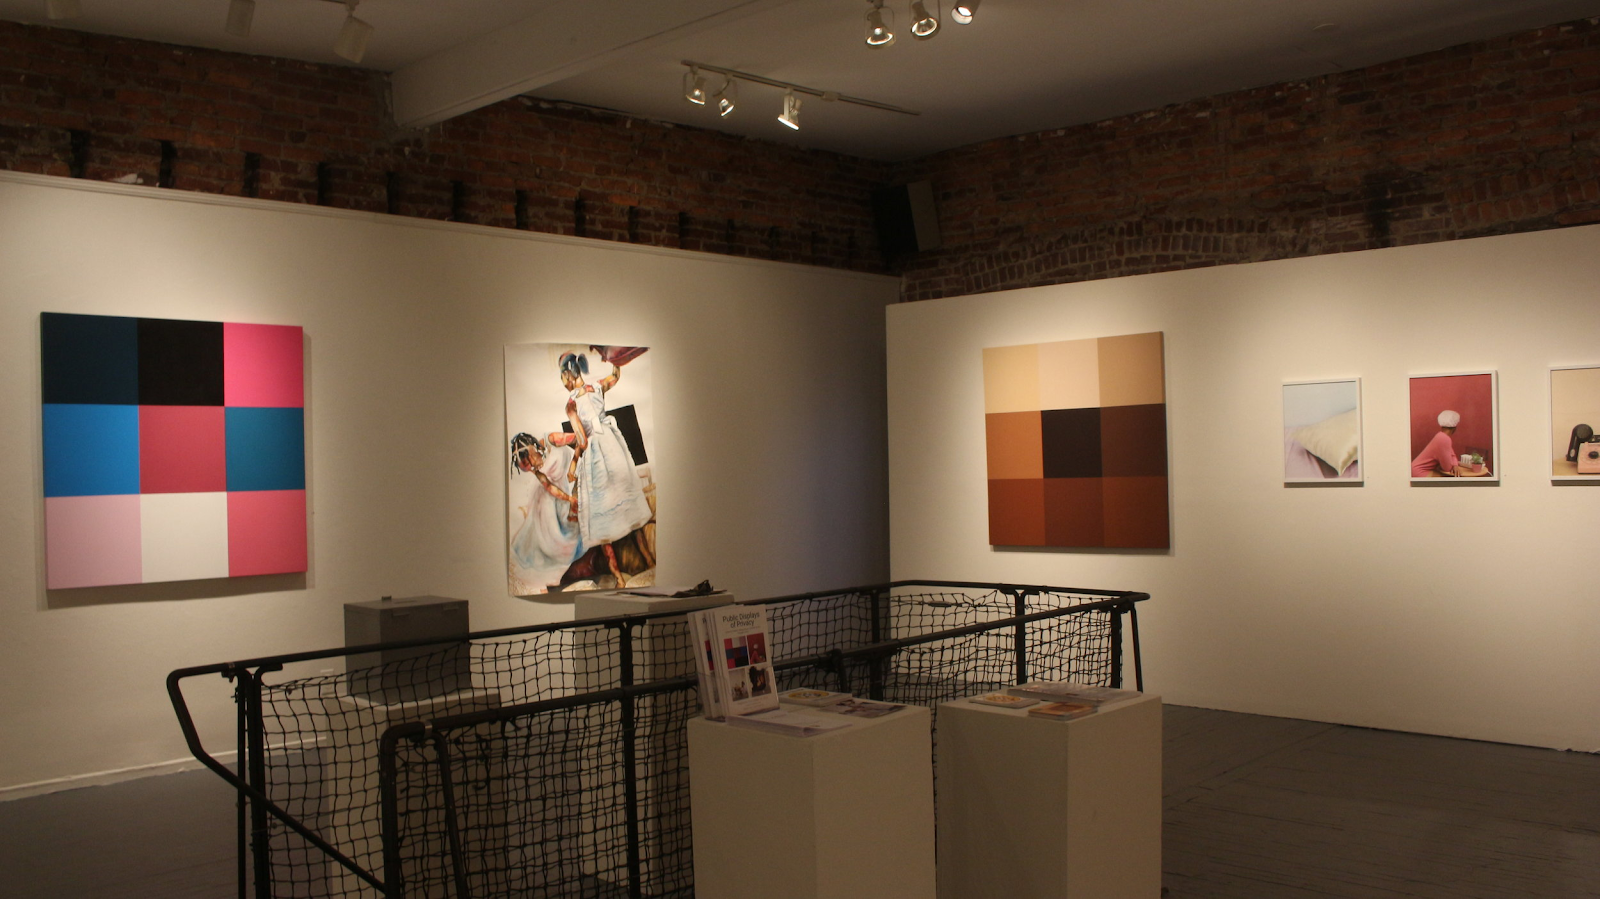 Installation shot of Public Displays of Privacy at The District of Columbia Arts Center (DCAC)